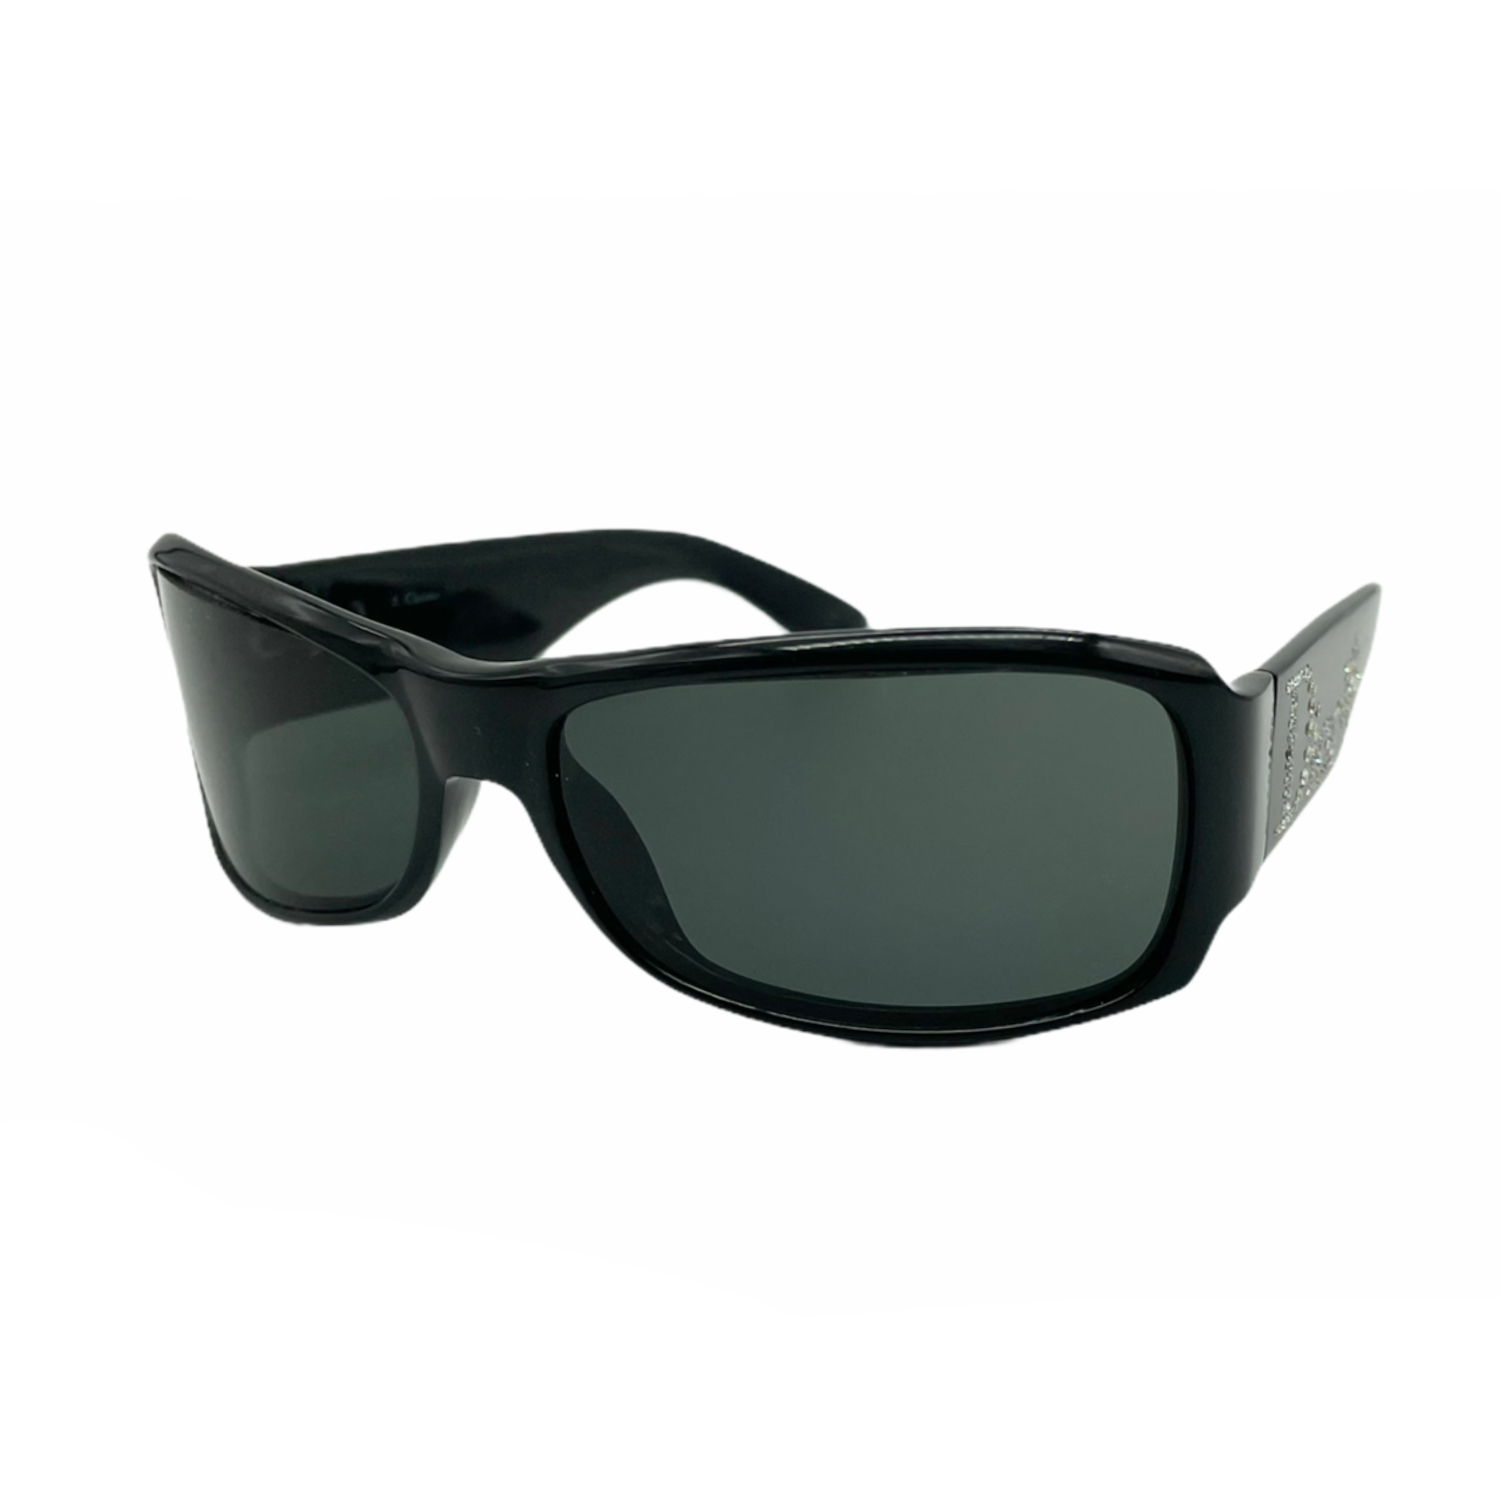 Vintage Dior Chunky Diamante Sunglasses in Black | NITRYL